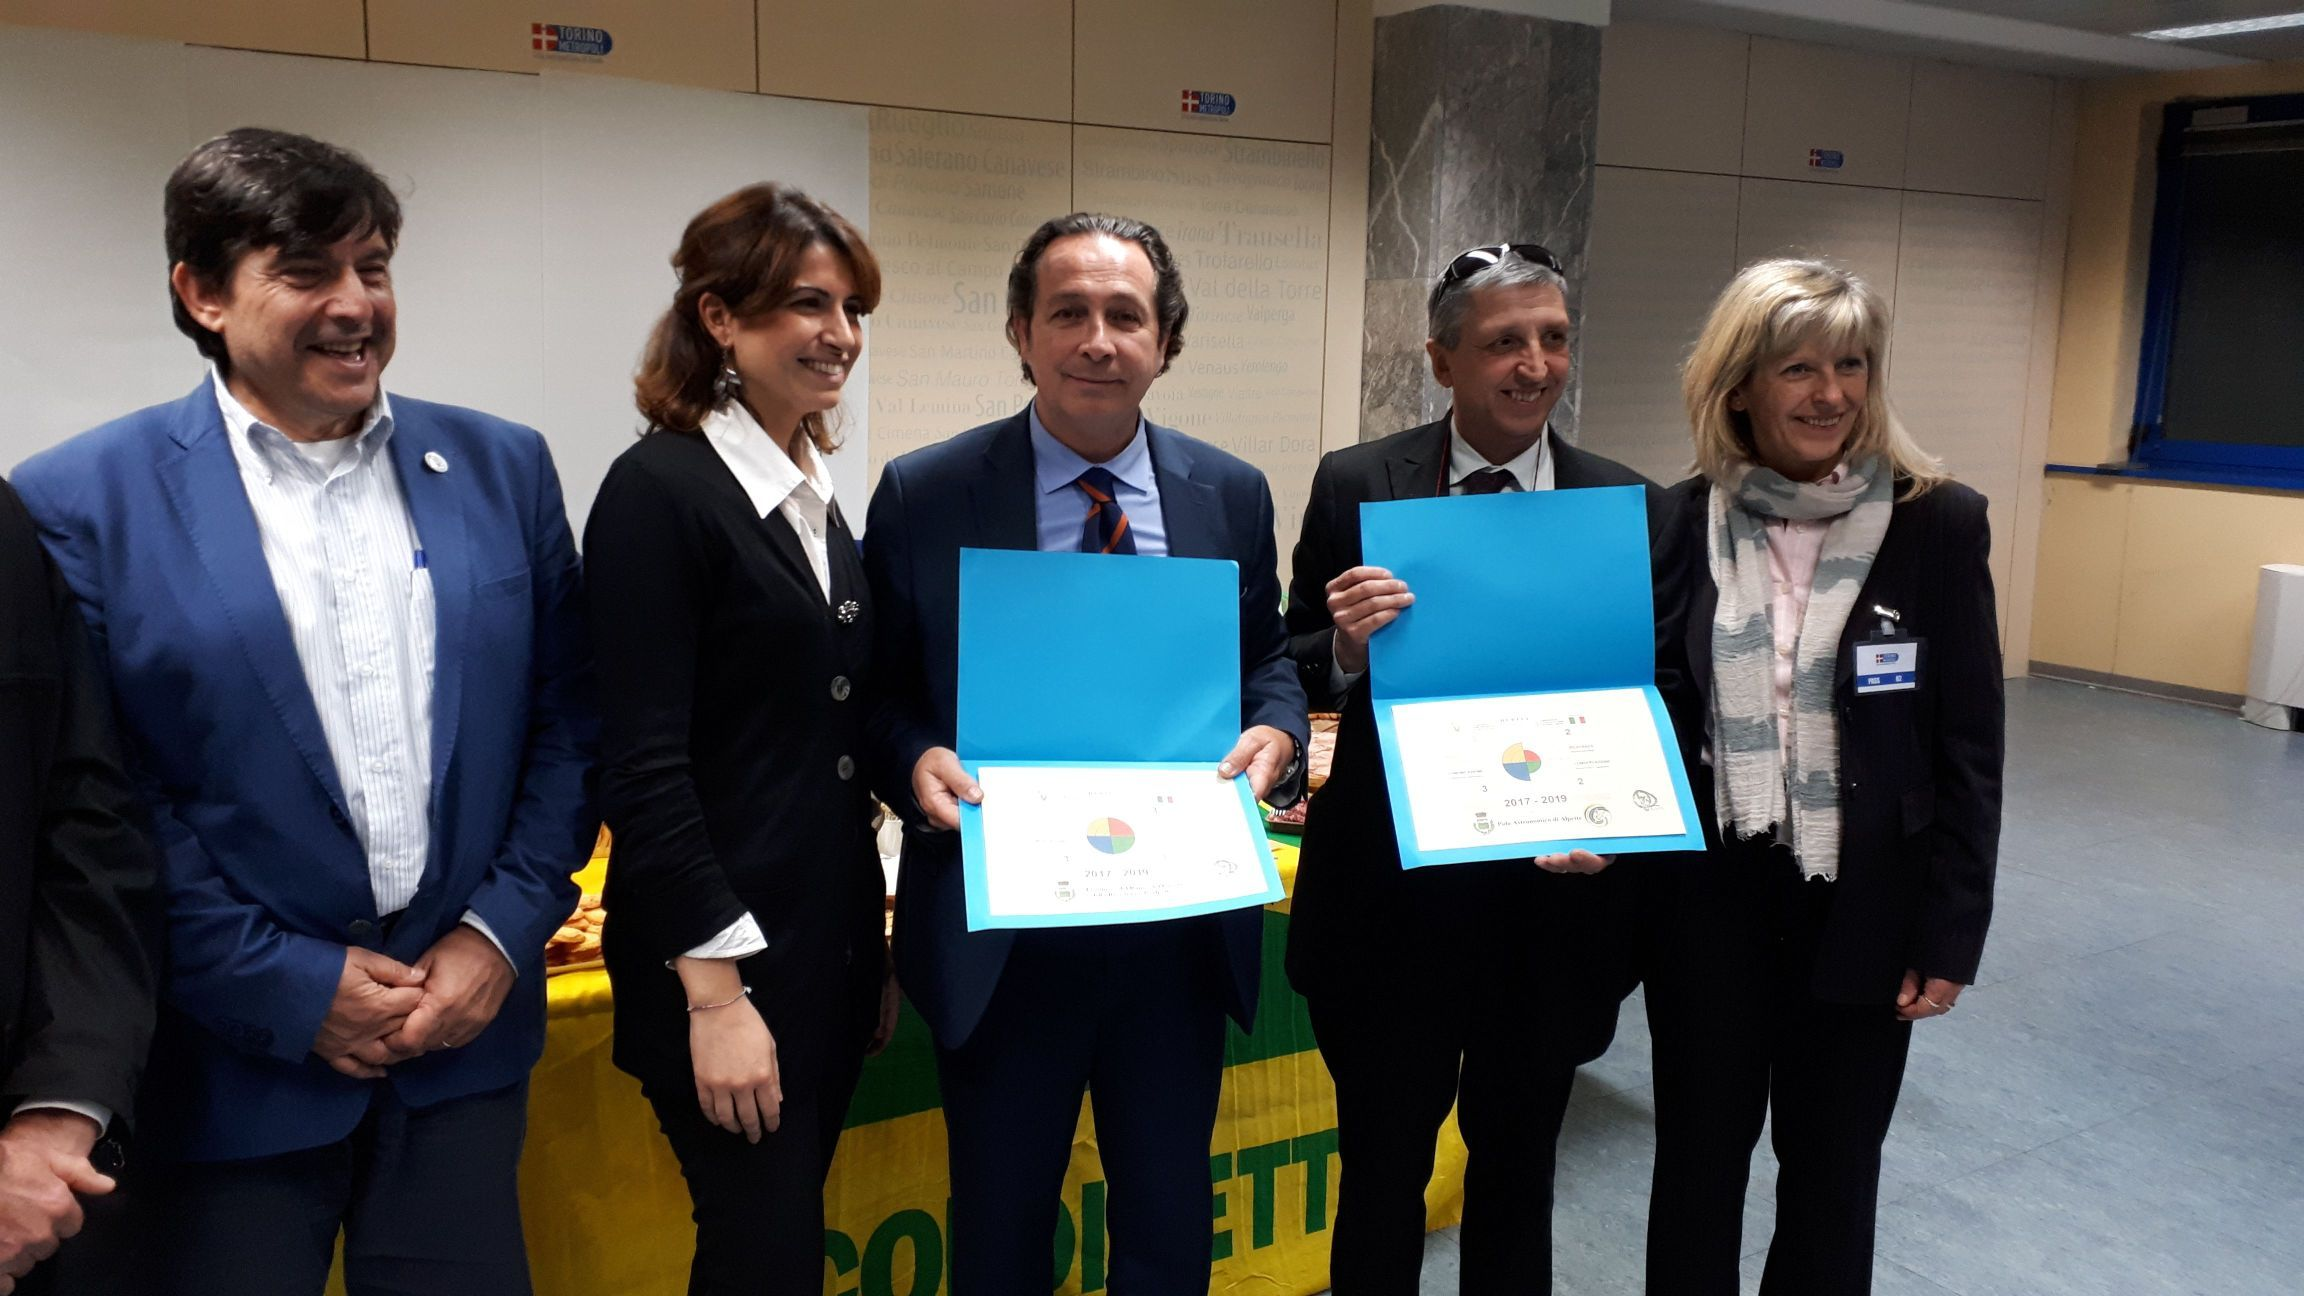 ALPETTE - Al Comune la Certificazione Herity International - FOTO